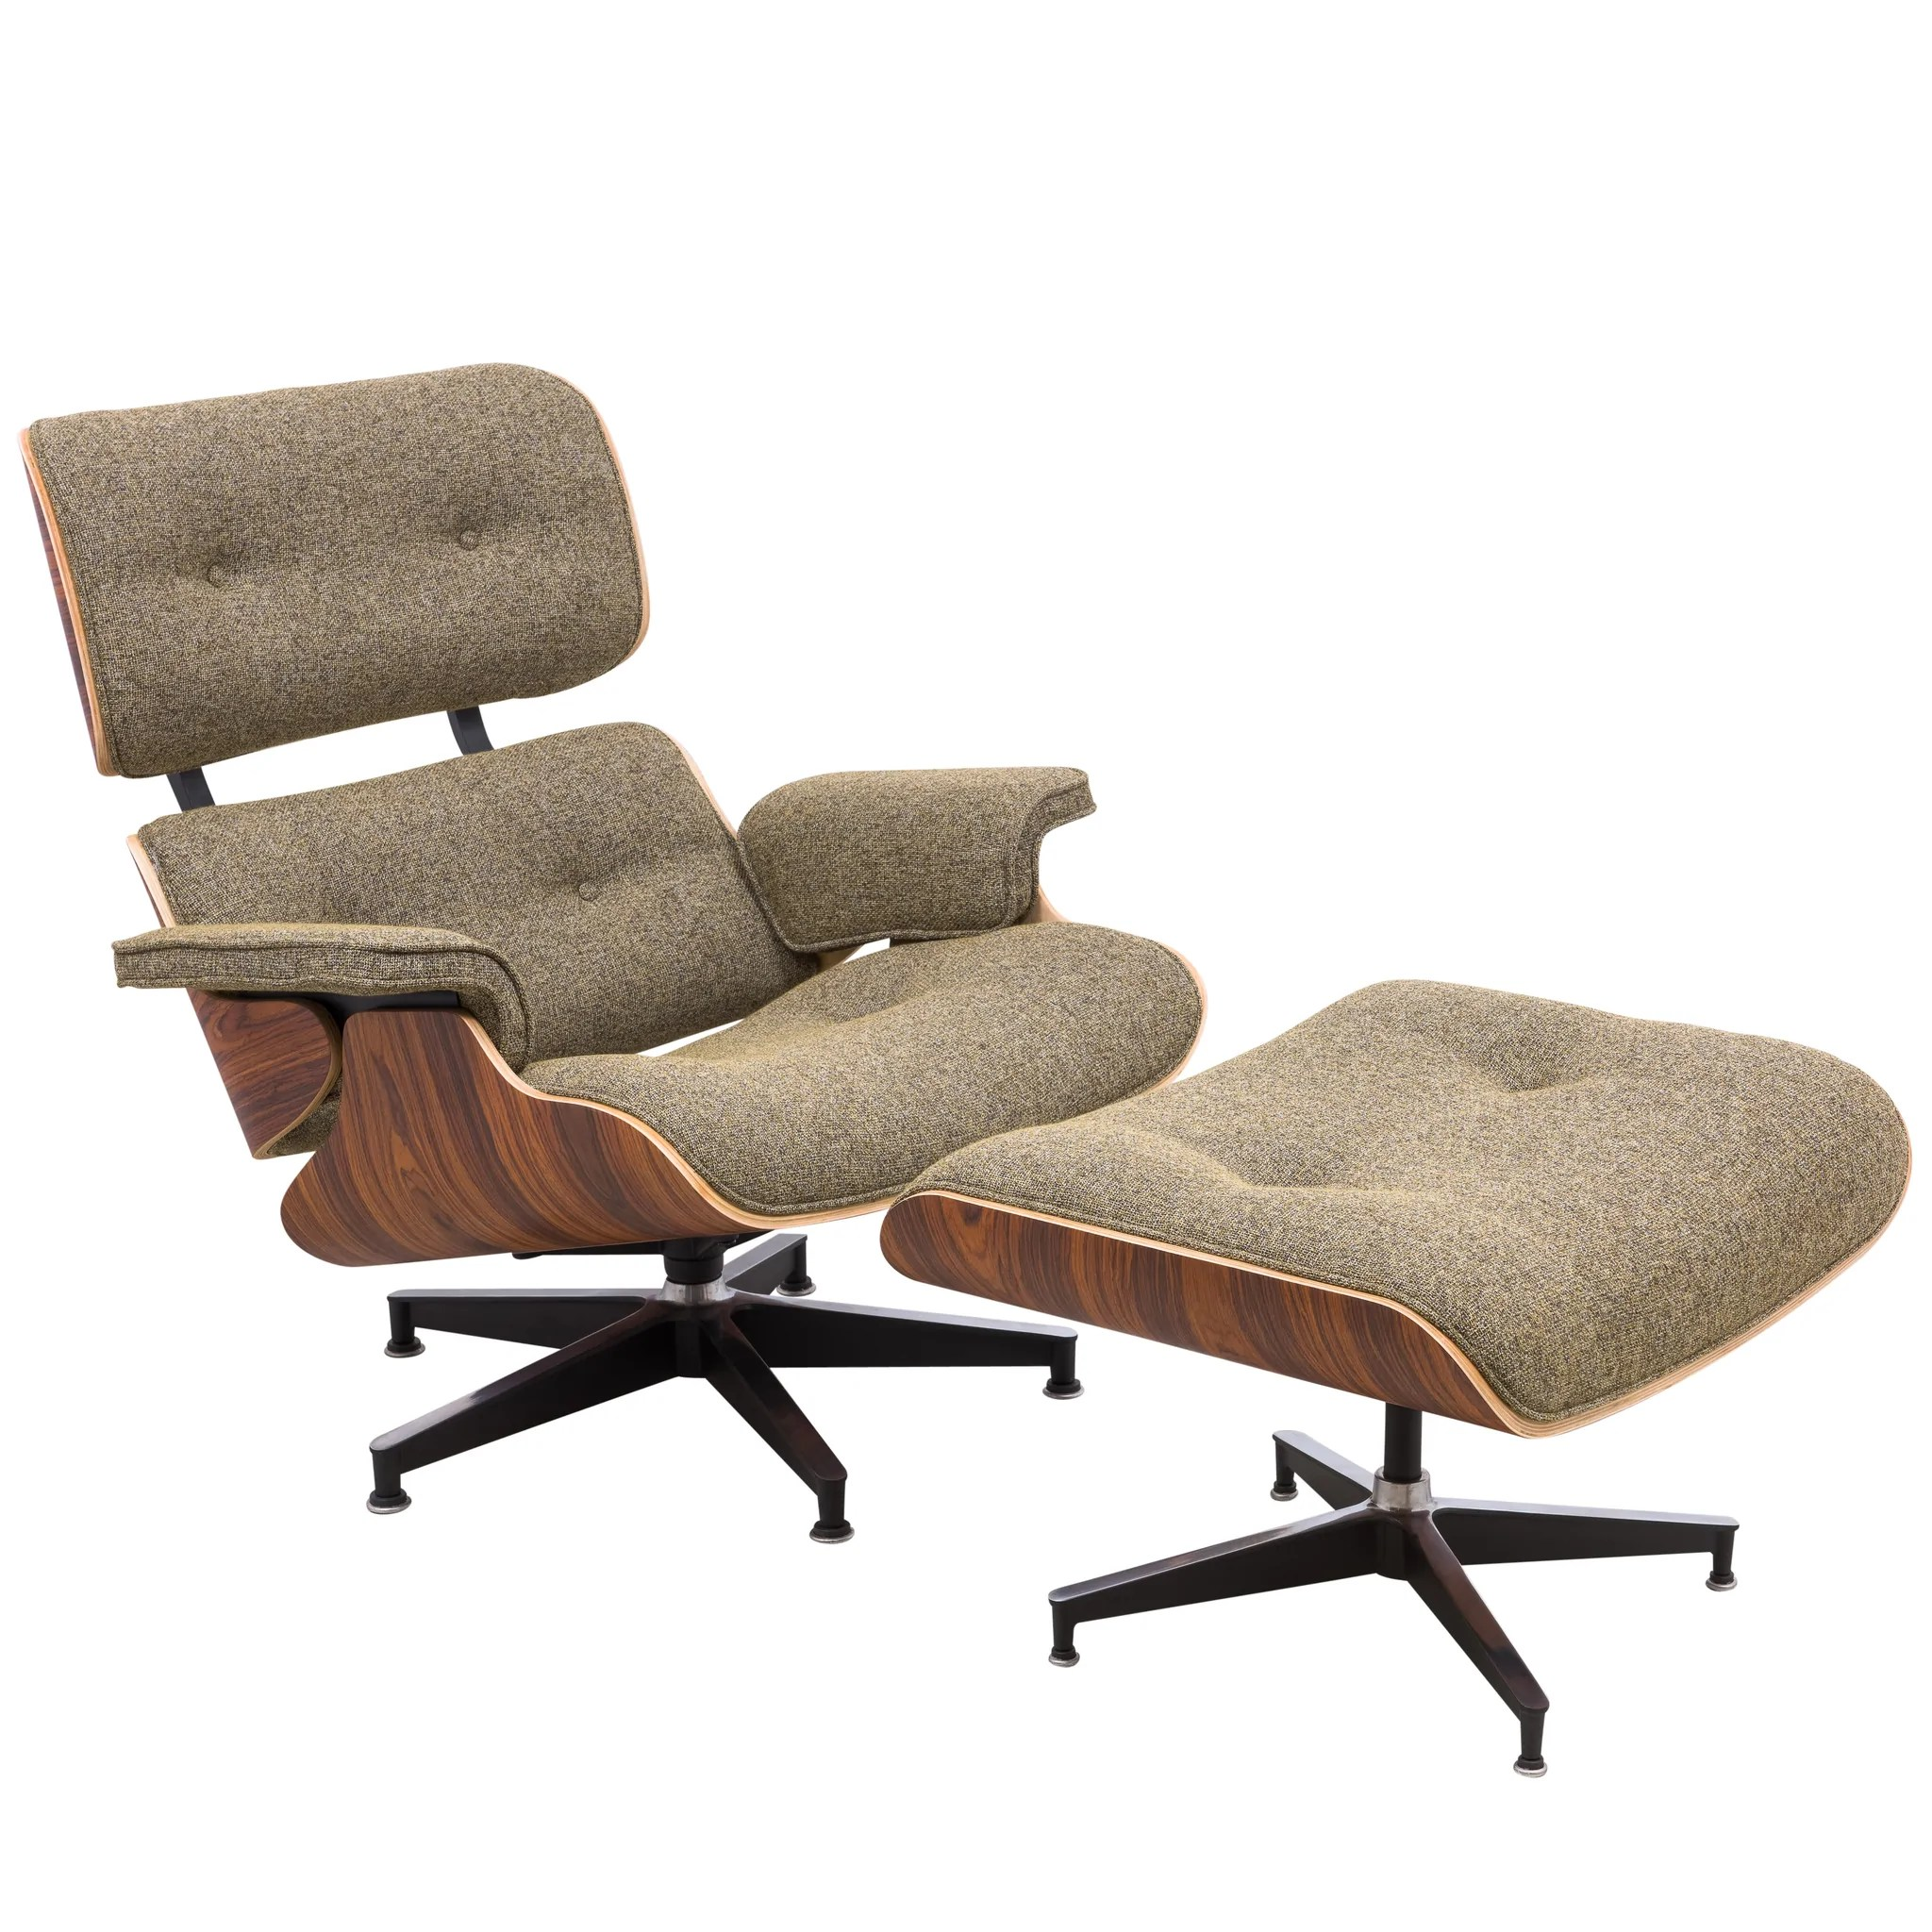 Eames Ottoman Eames Lounge Chair Ottoman Premium Reproduction